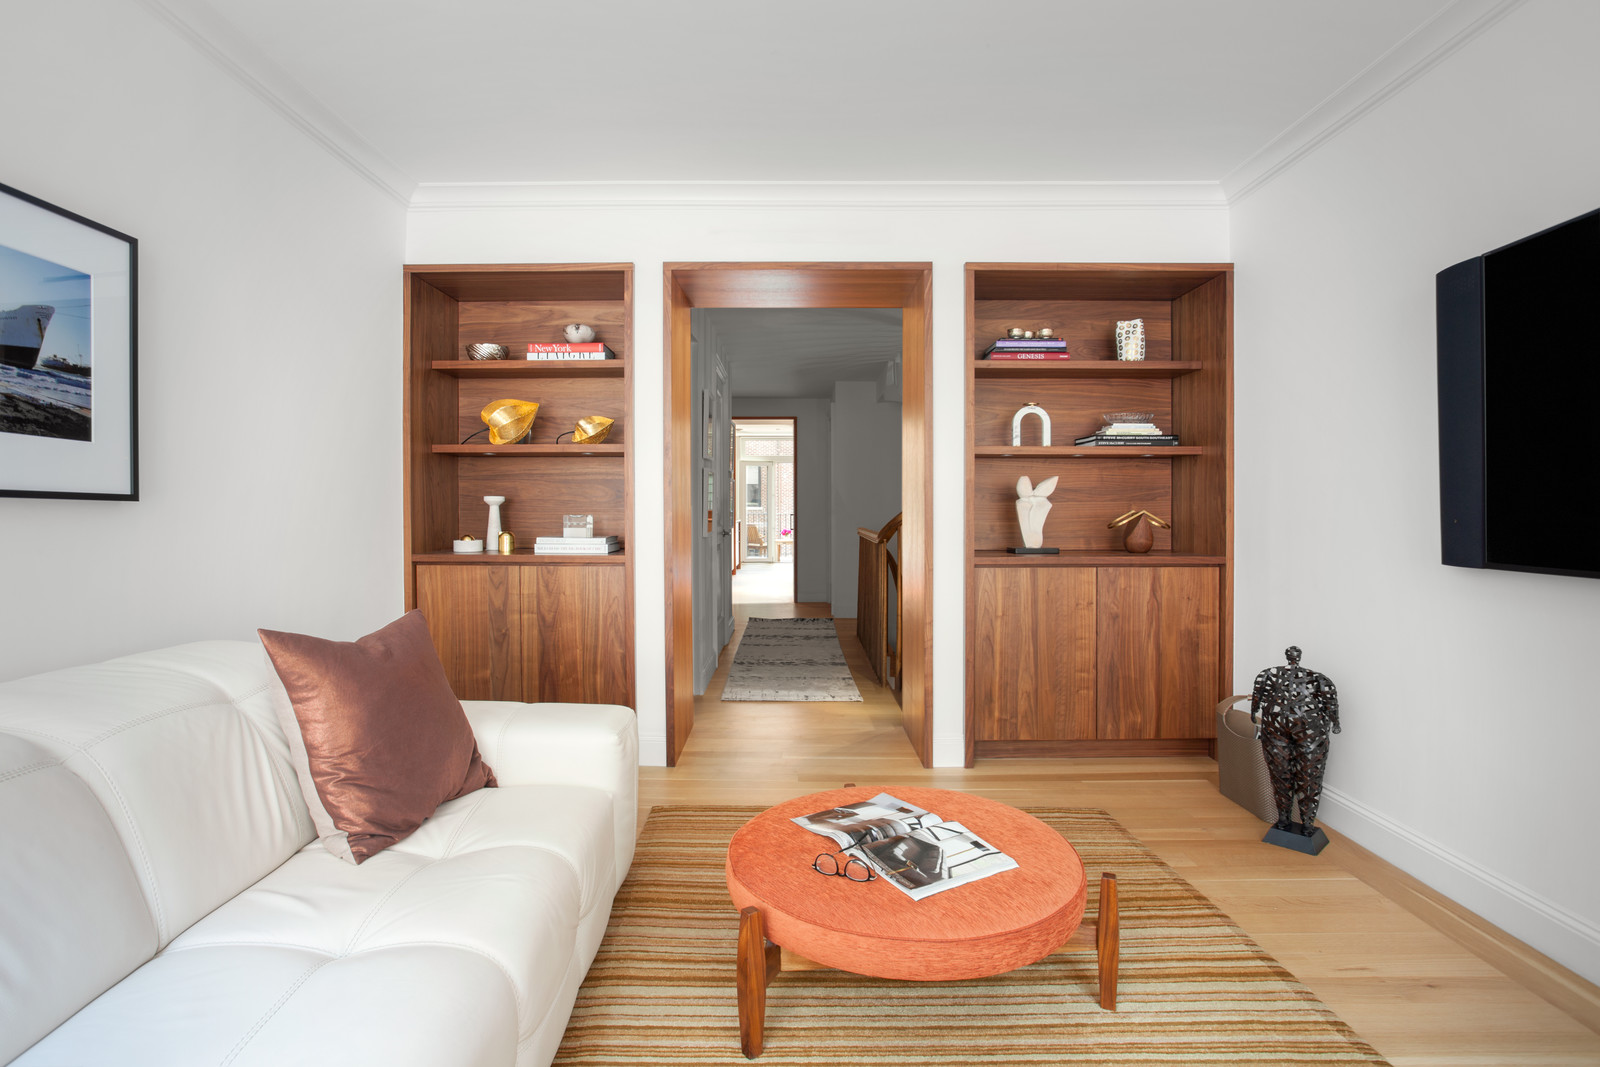 Built-in wardrobes made of walnut wood